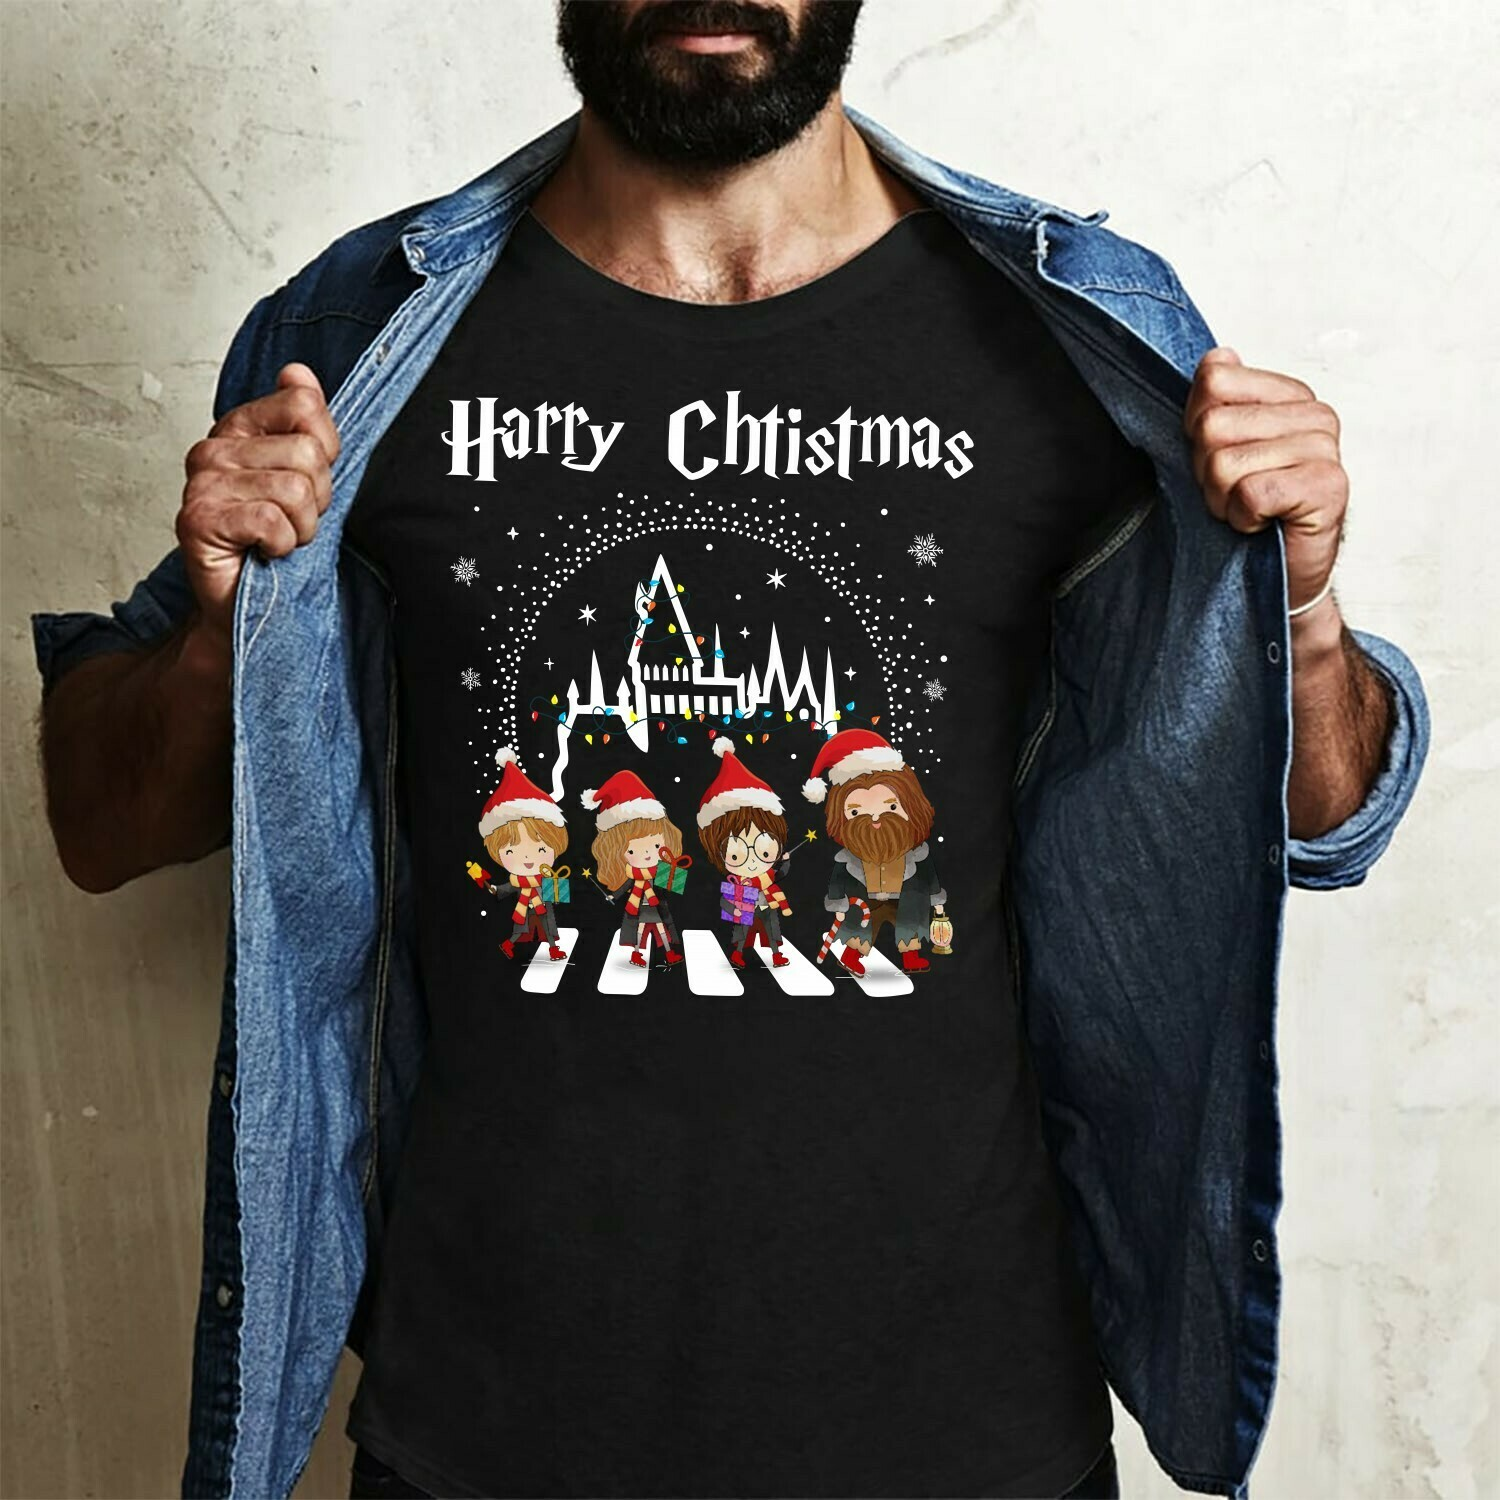 Harry Christmas Shirt Harry Porter And Friends Merry Christmas Noel Holly Jolly Holiday Costume Gift for Best Friend Family Vacation T-Shirt Long Sleeve Sweatshirt Hoodie Jolly Family Gifts